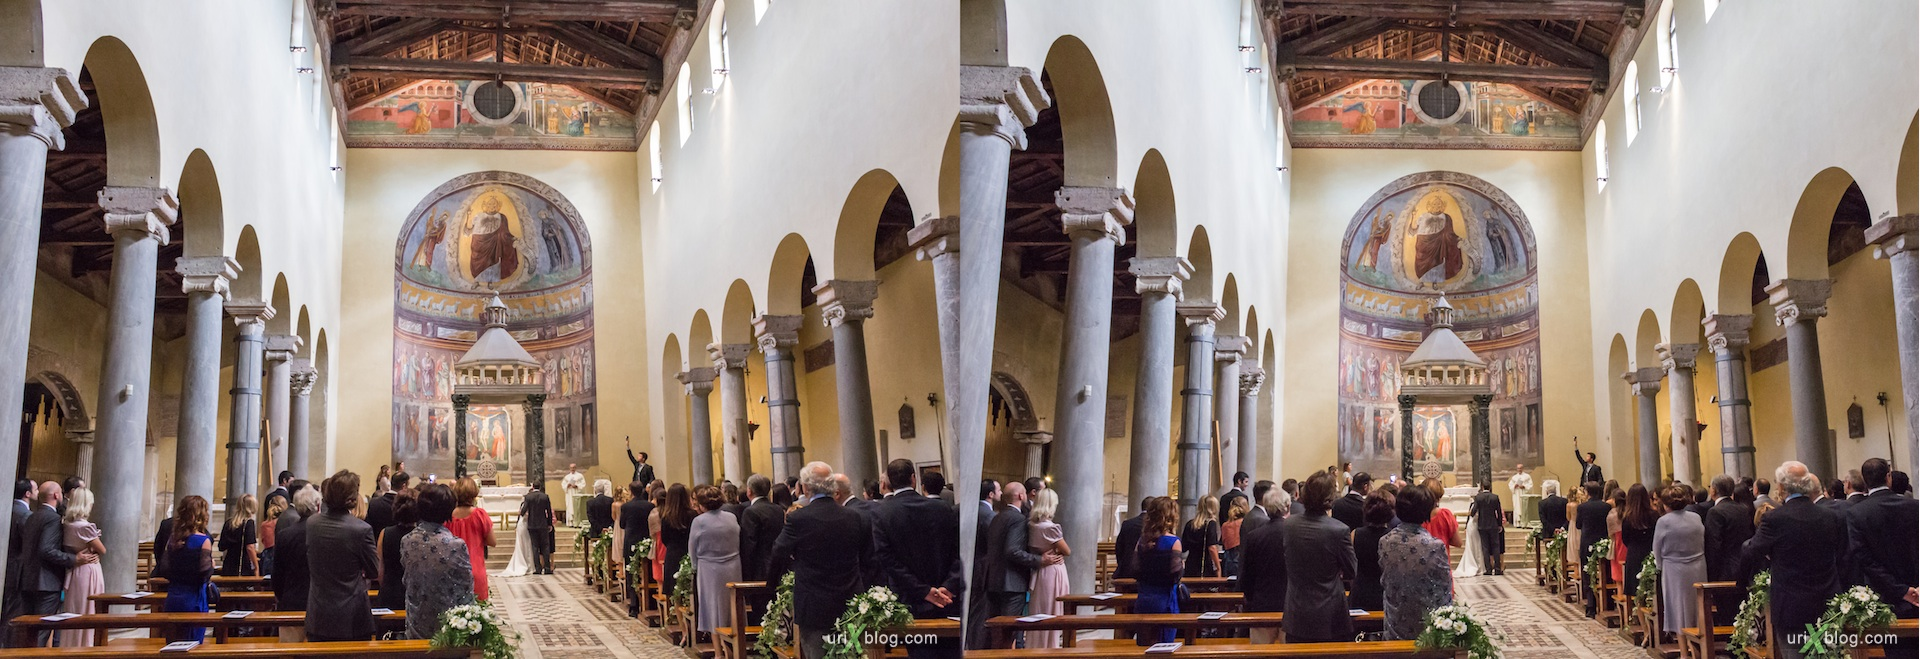 2012, wedding, basilica di San Saba, church, Rome, Italy, cathedral, monastery, Christianity, Catholicism, 3D, stereo pair, cross-eyed, crossview, cross view stereo pair